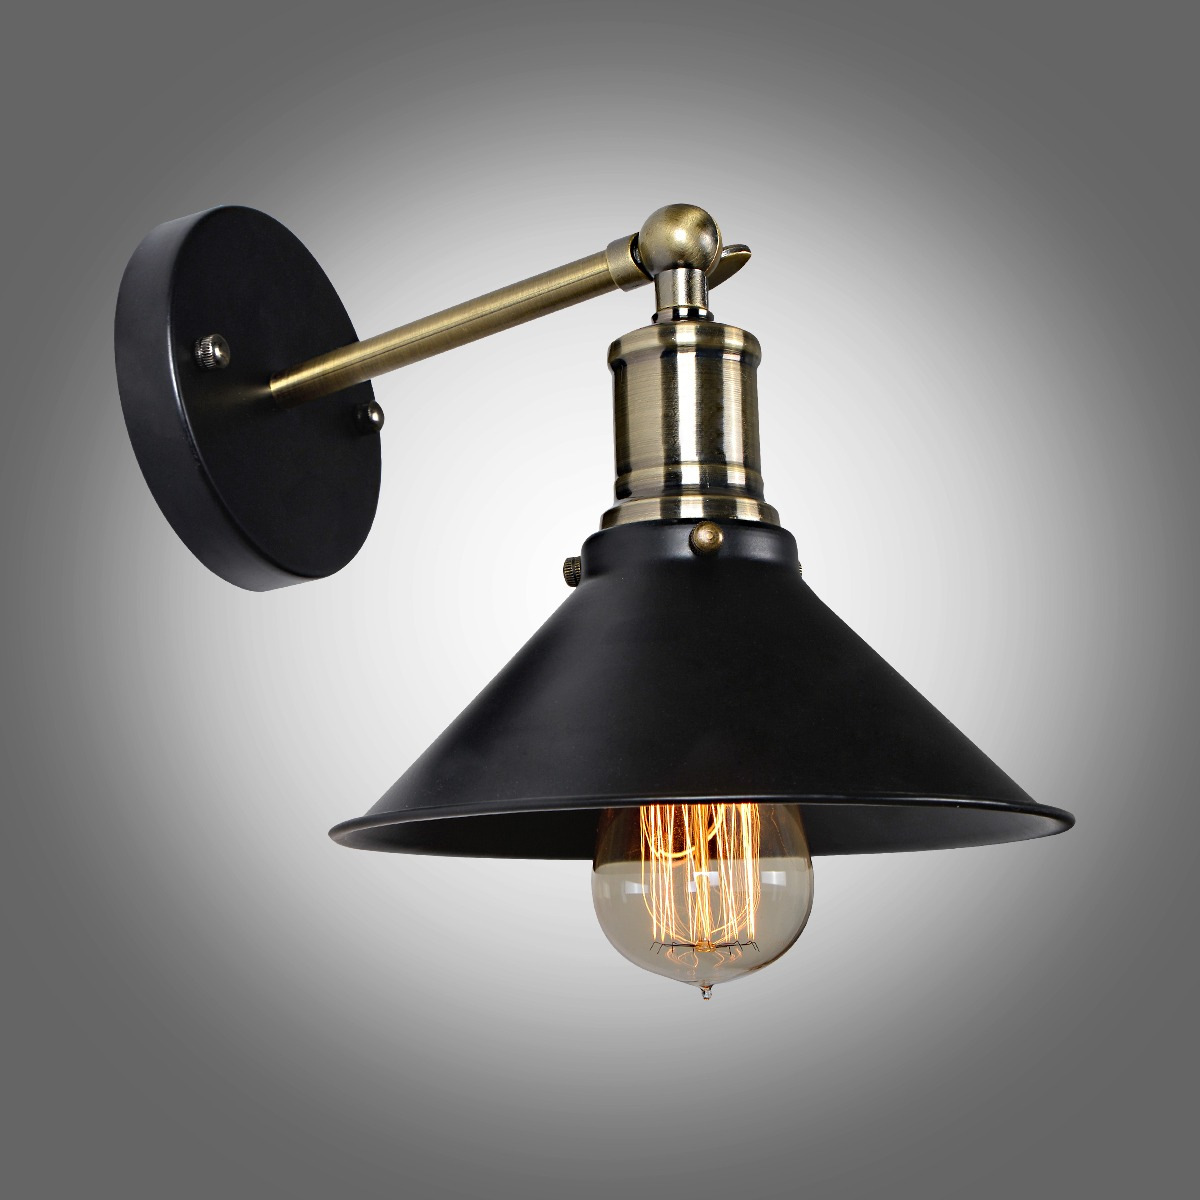 Black Retro Wall Lights : NEW Industrial Black Metal Vintage Wall Lamp Retro Wall Sconce Edison Lamp eBay